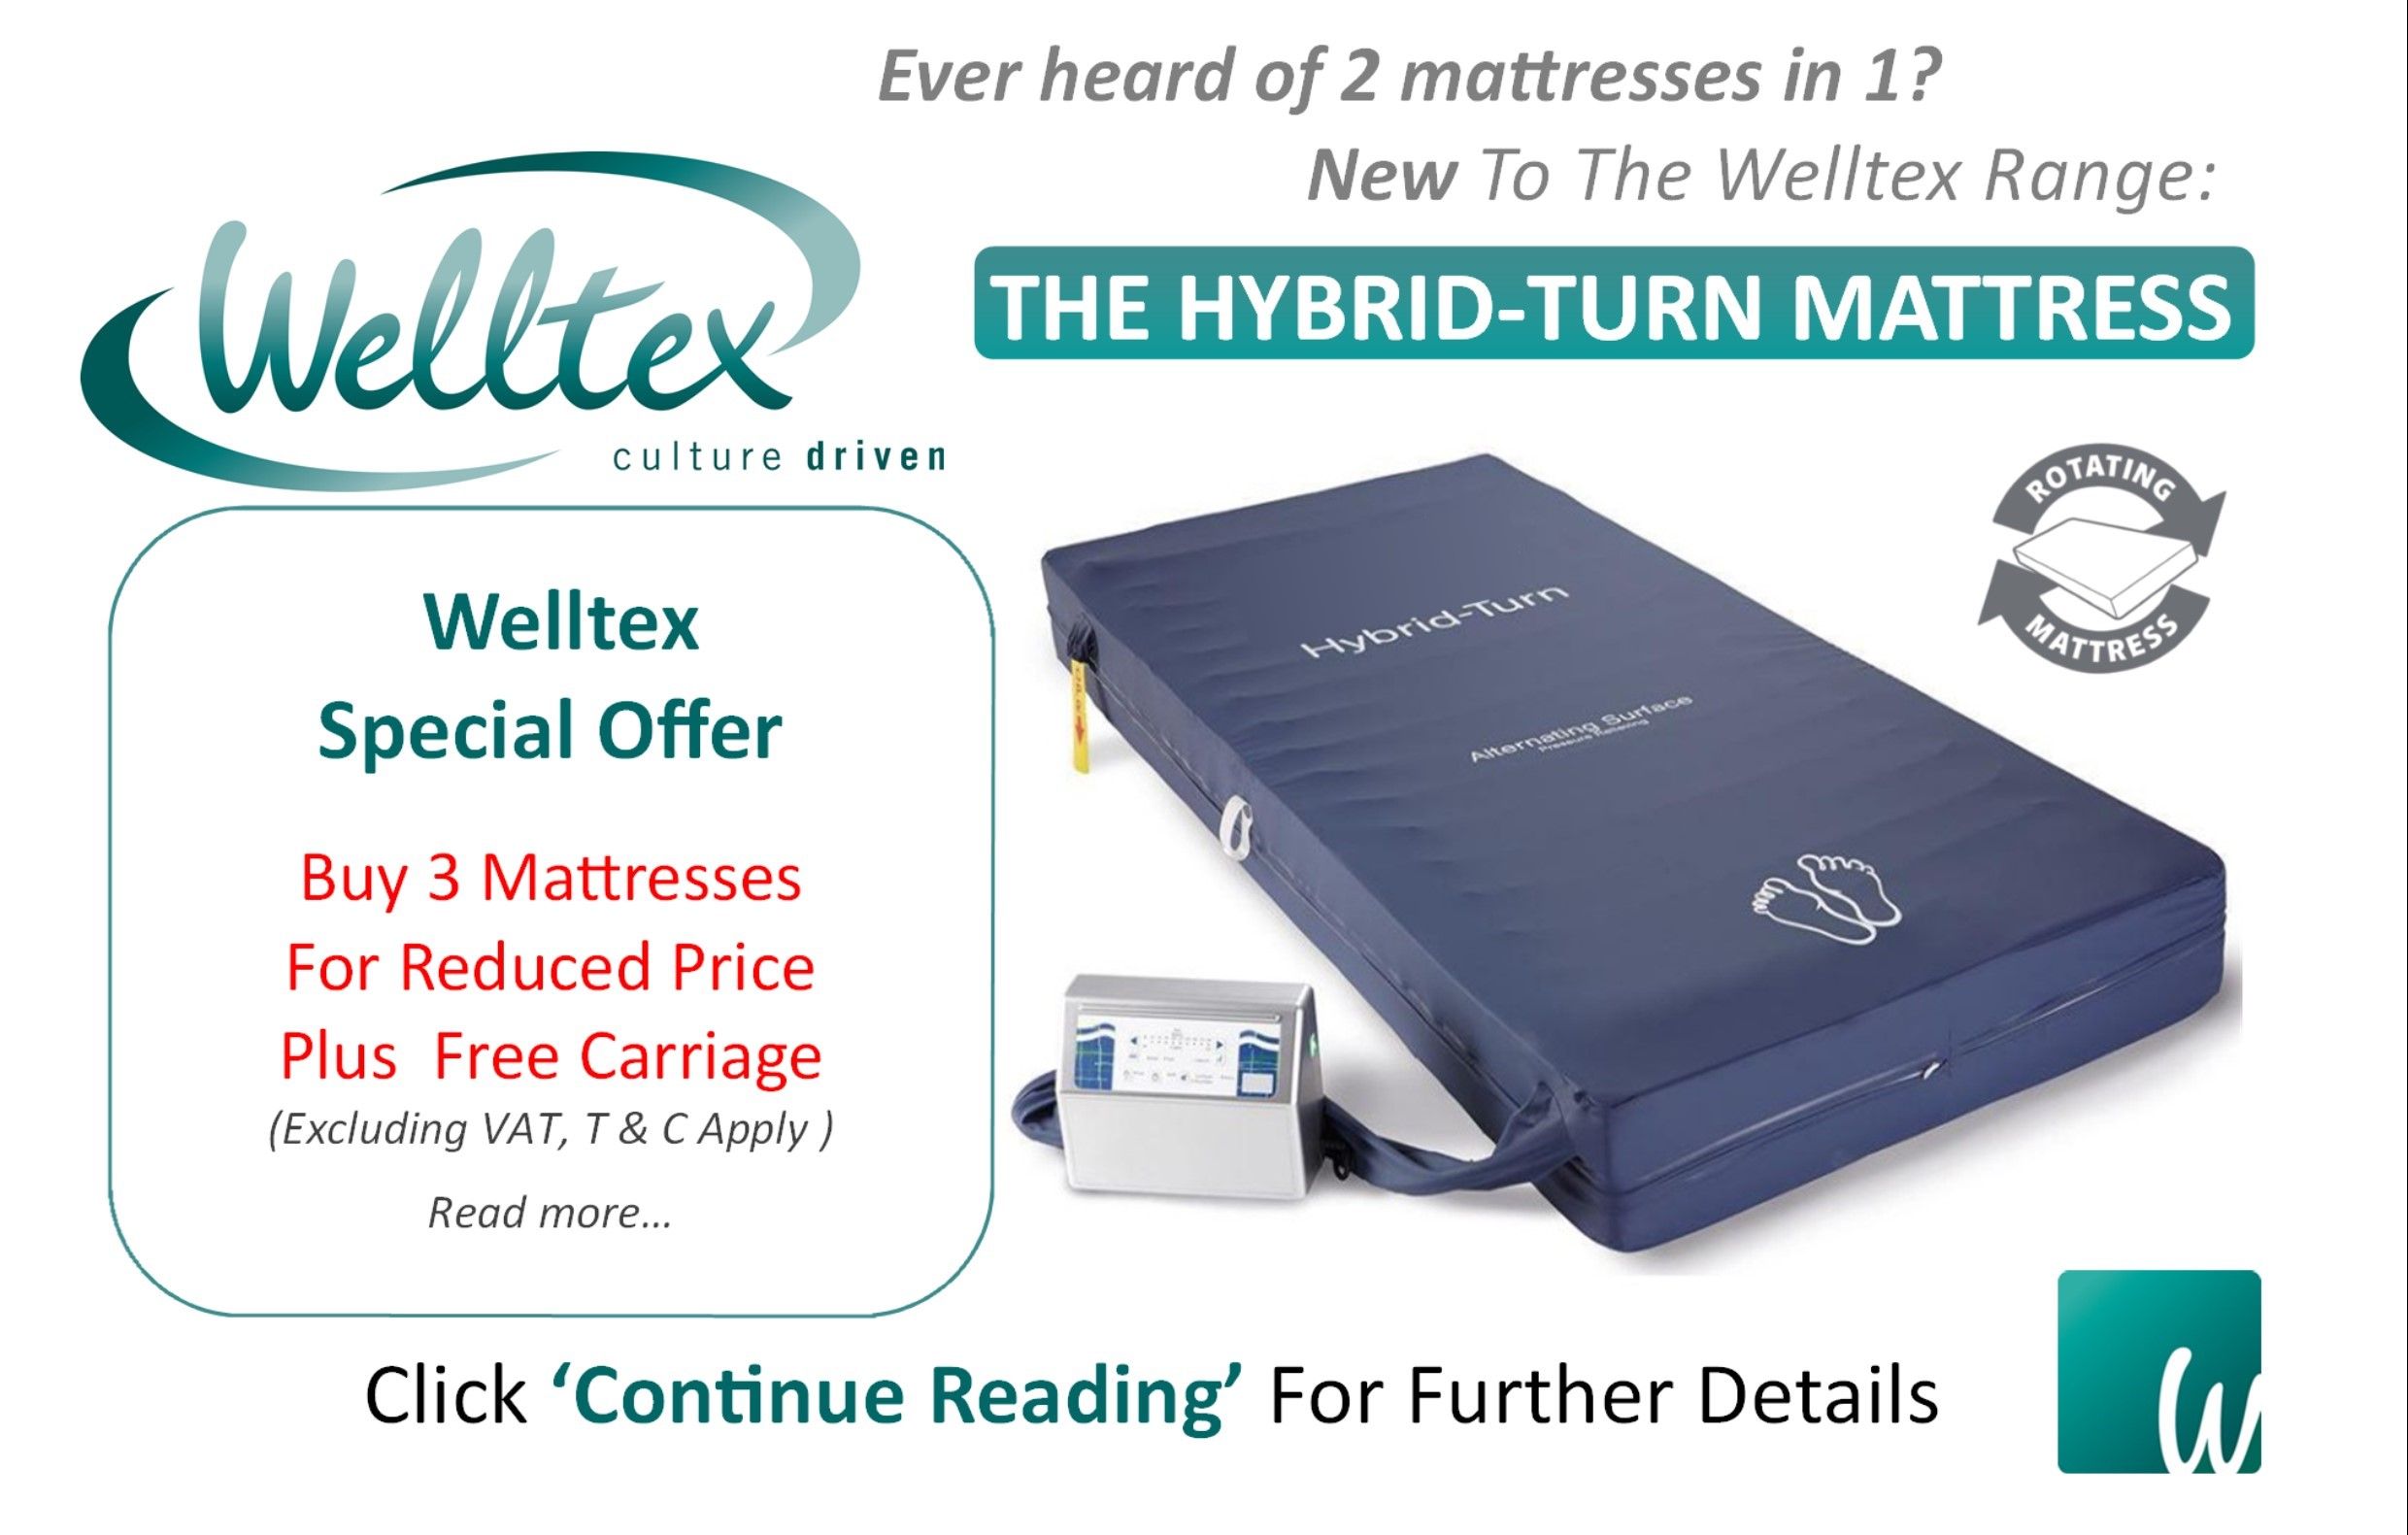 Introducing 2 Mattresses in 1: The Hybrid-Turn Mattress